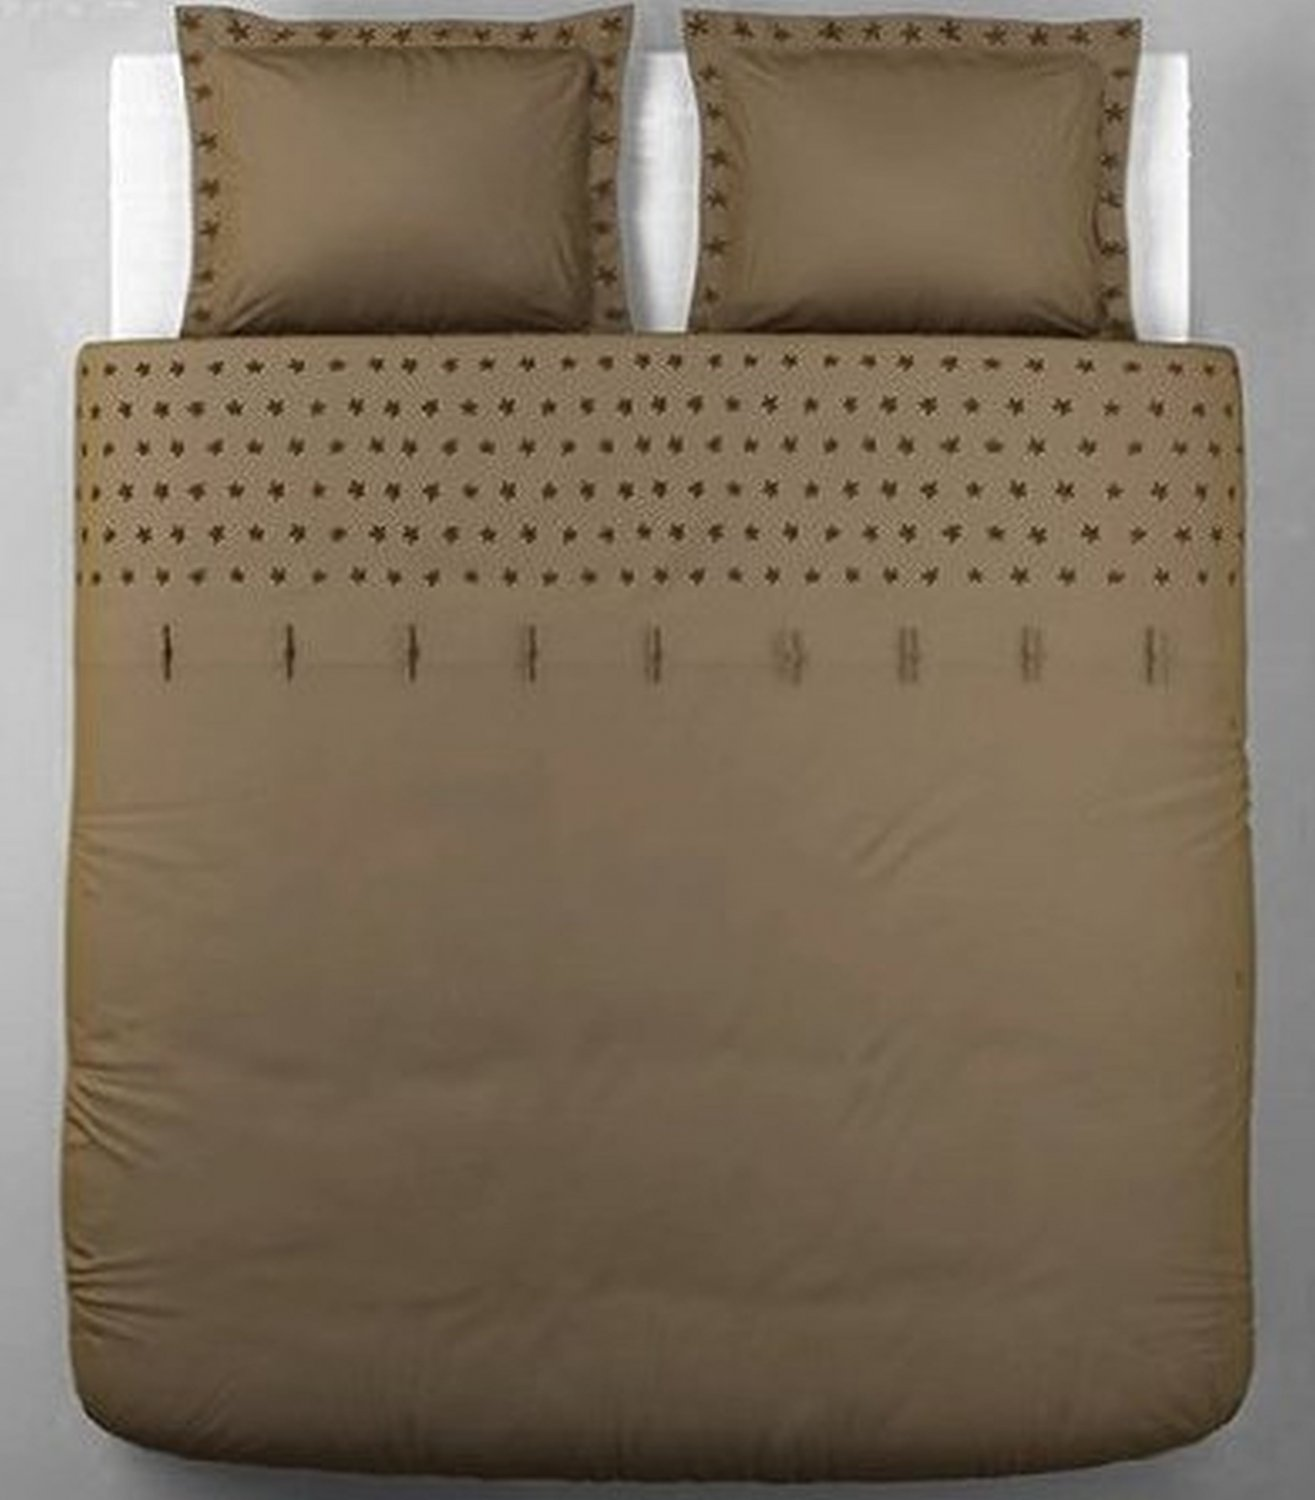 Ikea Tanja Brodyr Queen Full Double Duvet Cover Pillowcases Set Light Brown Satin Embroidered